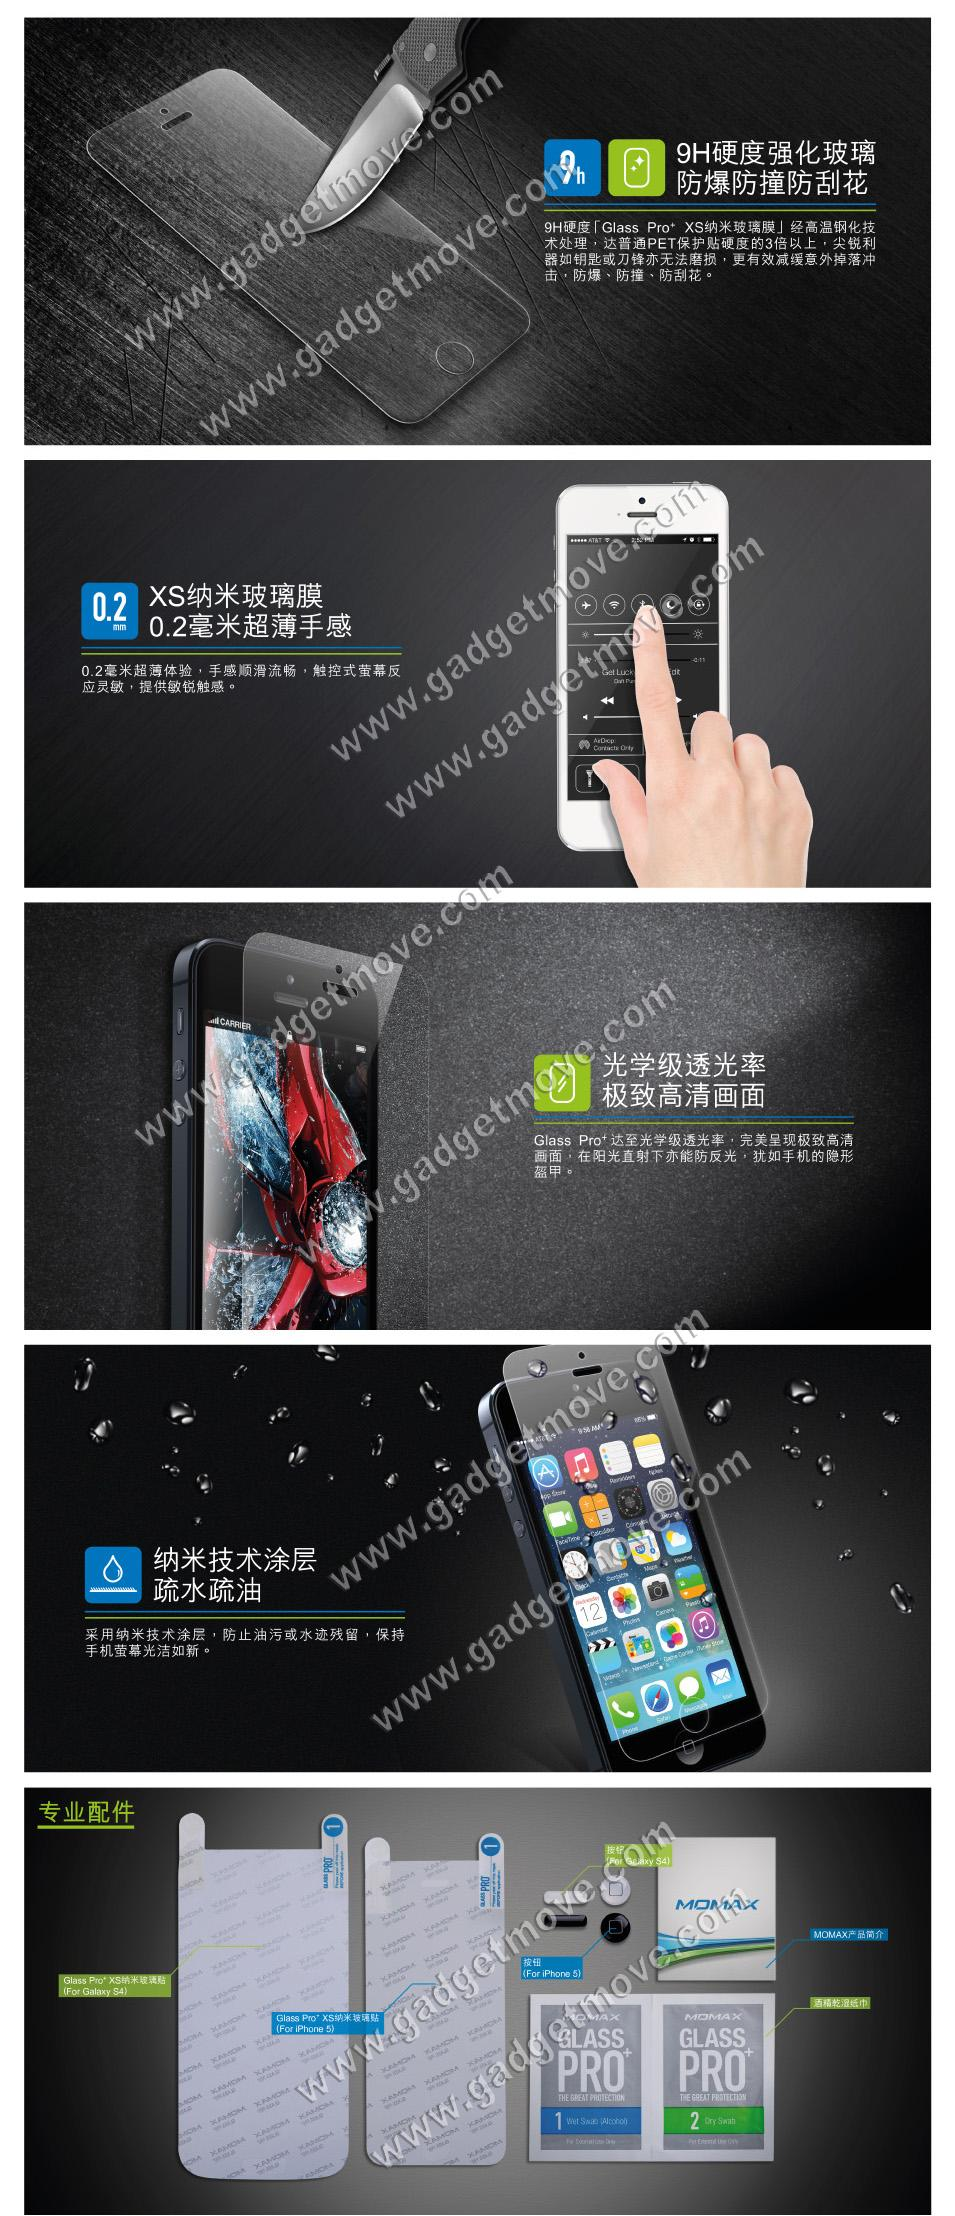 Momax Glass Pro+ iPhone 5S 5C HTC M8 Tempered Glass Screen Protector